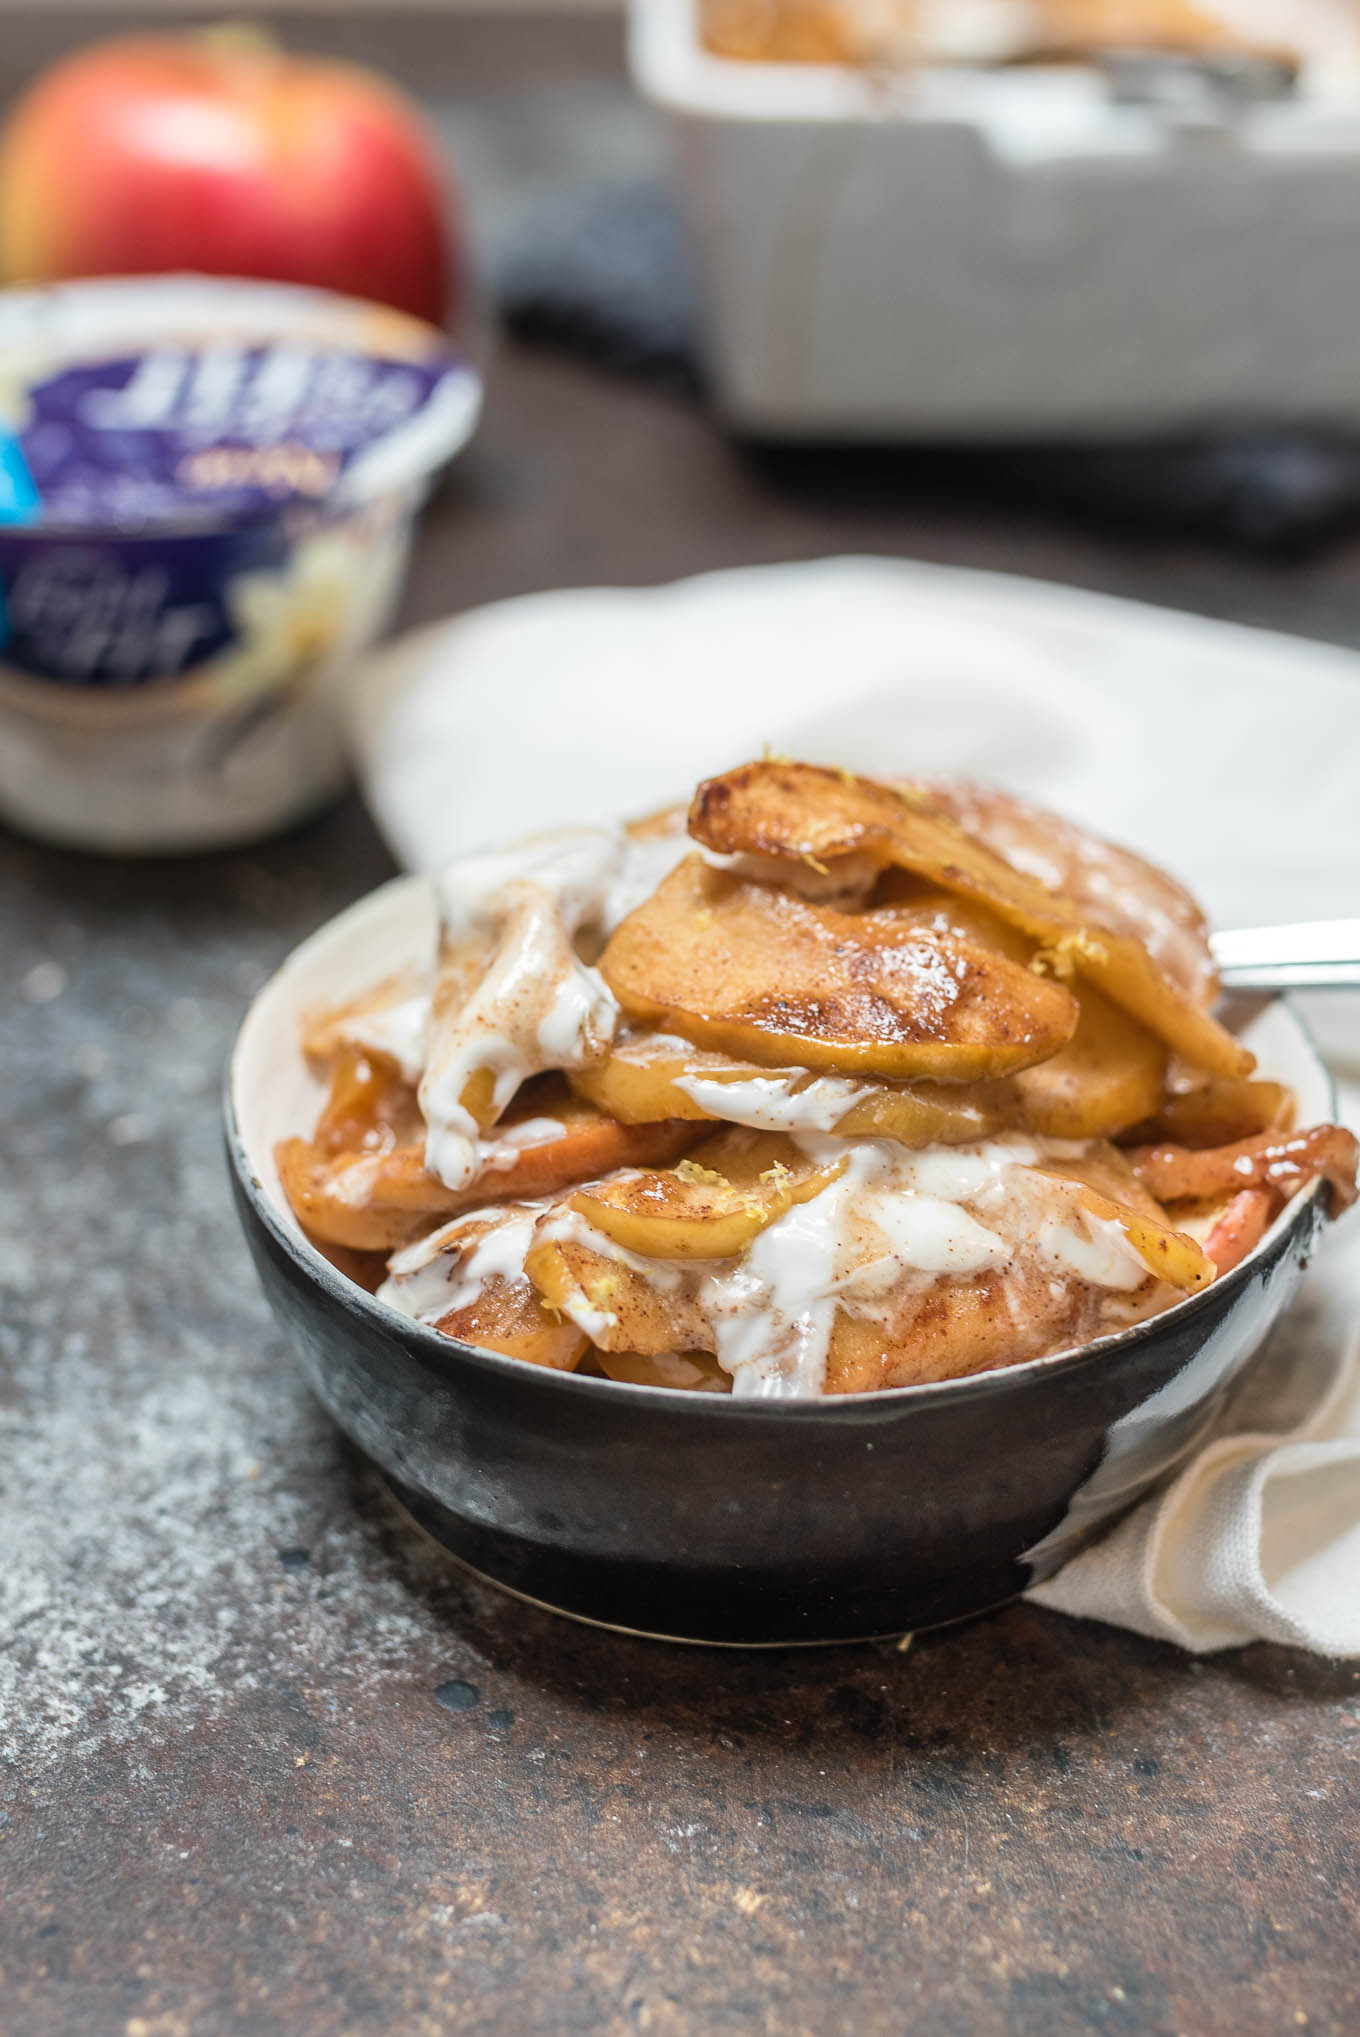 Cinnamon Baked Apples with Yogurt satisfies that apple pie sweet tooth while being a healthier option with fewer calories.